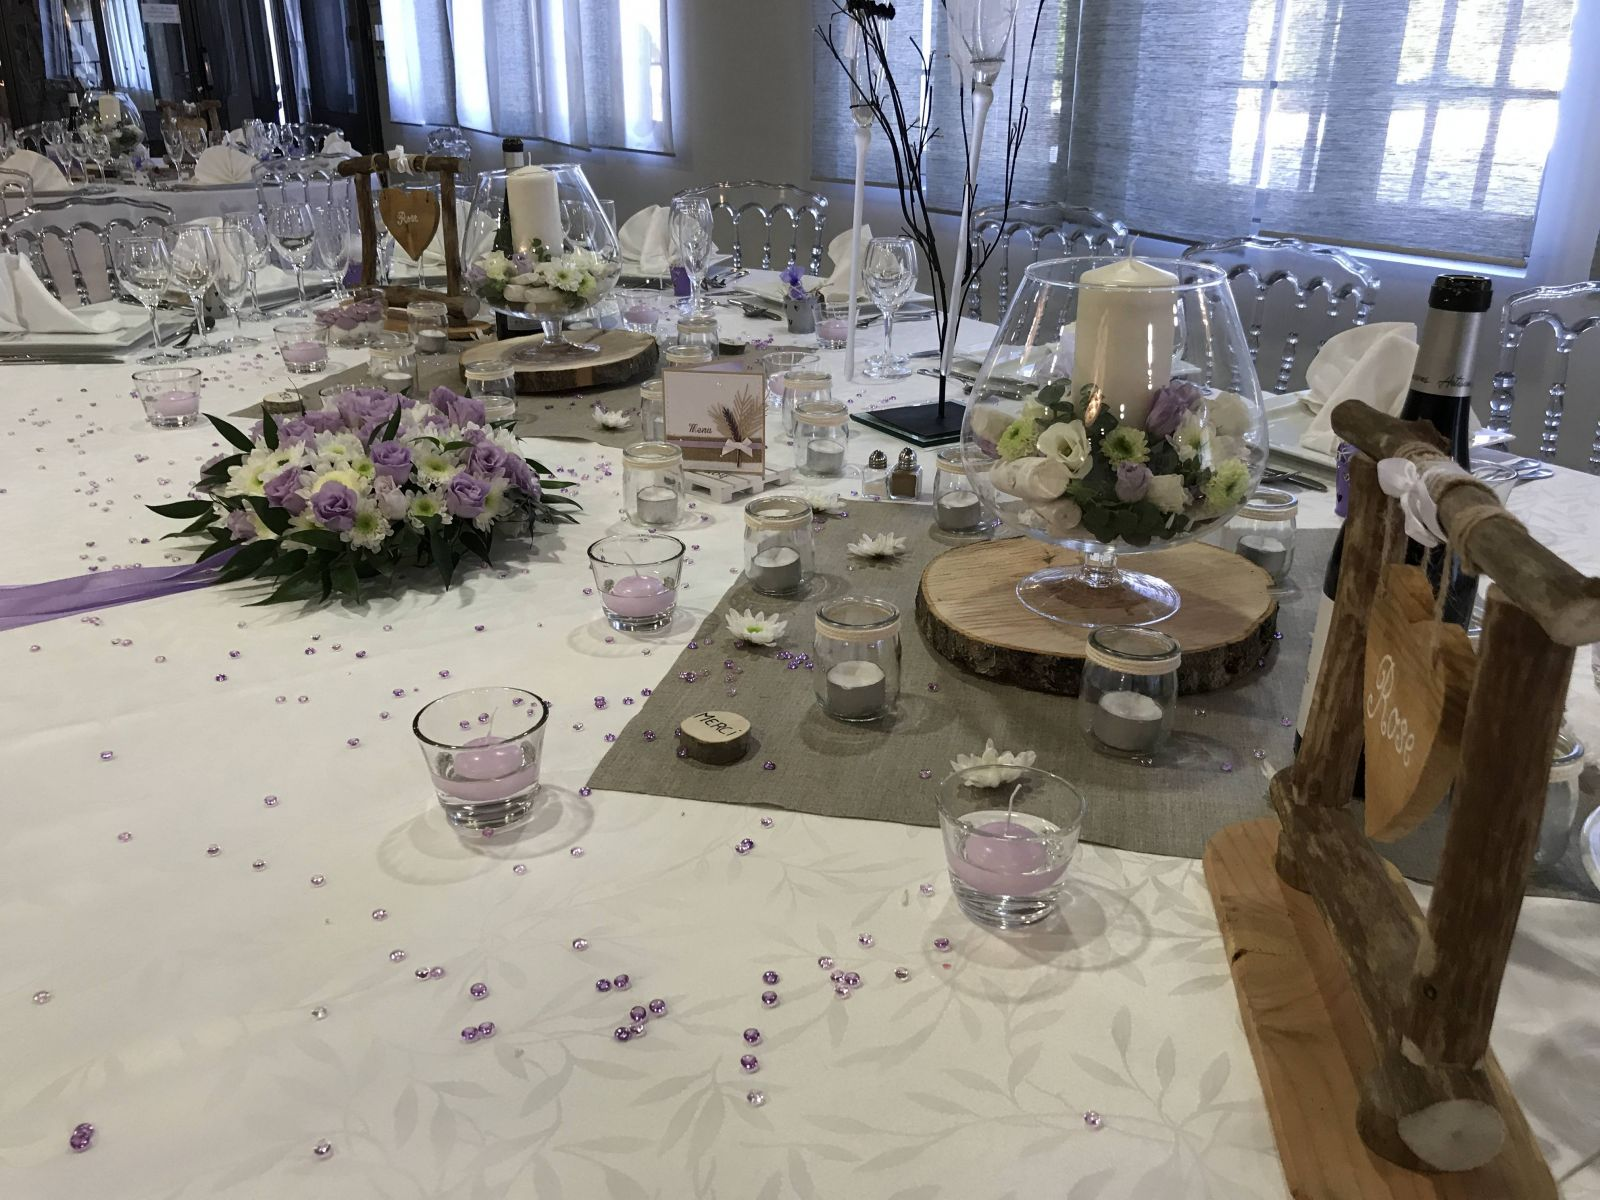 D coration de table pour mariage th me champ tre parme avignon la bastide malaugo - Decoration table champetre jardin la rochelle ...